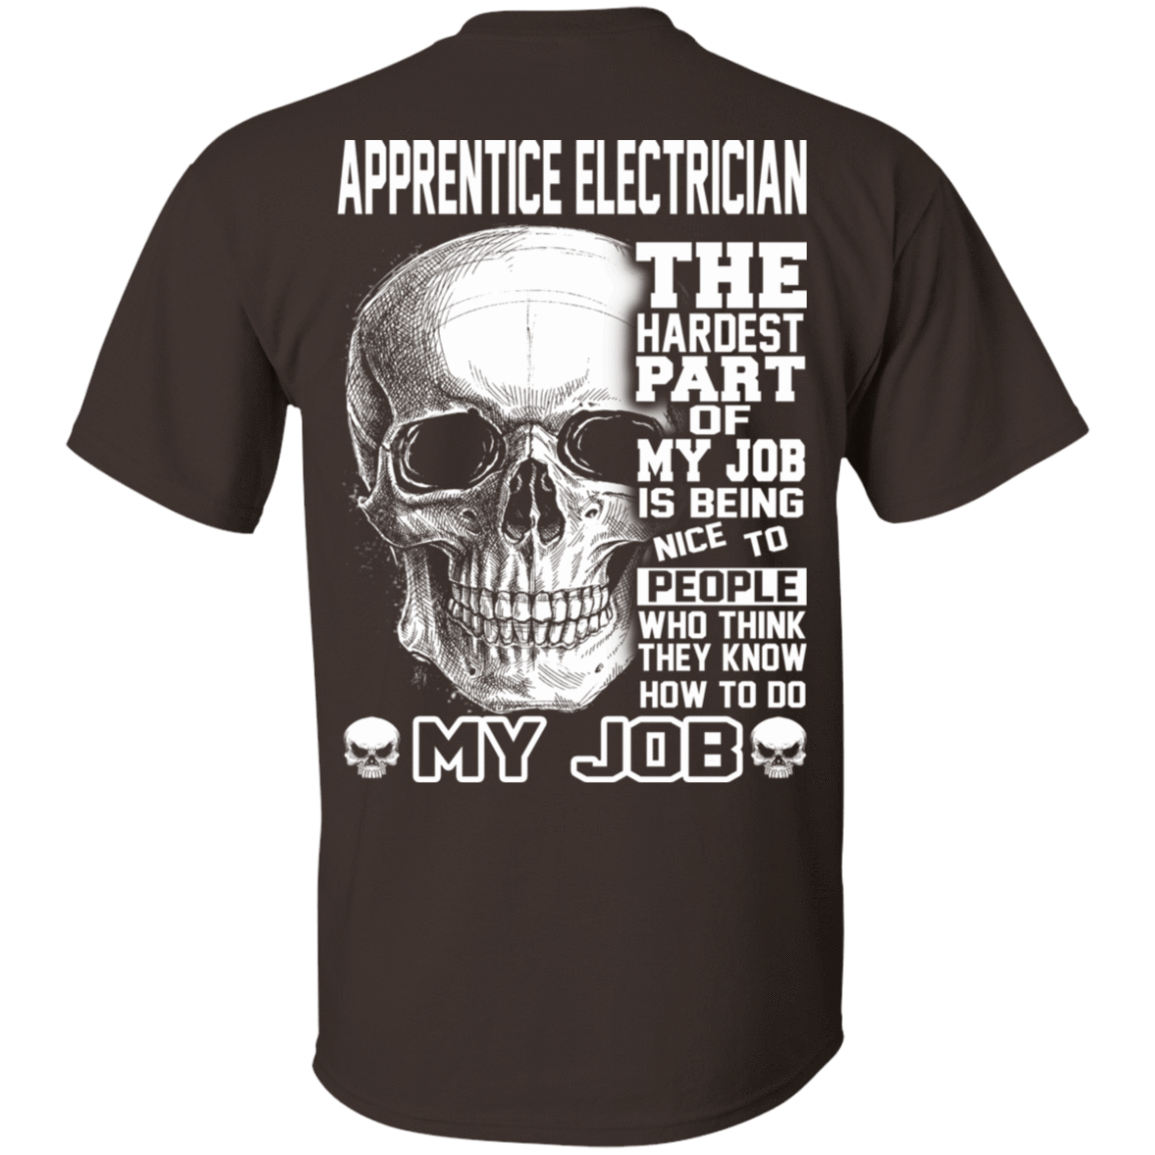 Apprentice Electrician The Hardest Part Of My Job 22-2283-72369949-12087 - Tee Ript